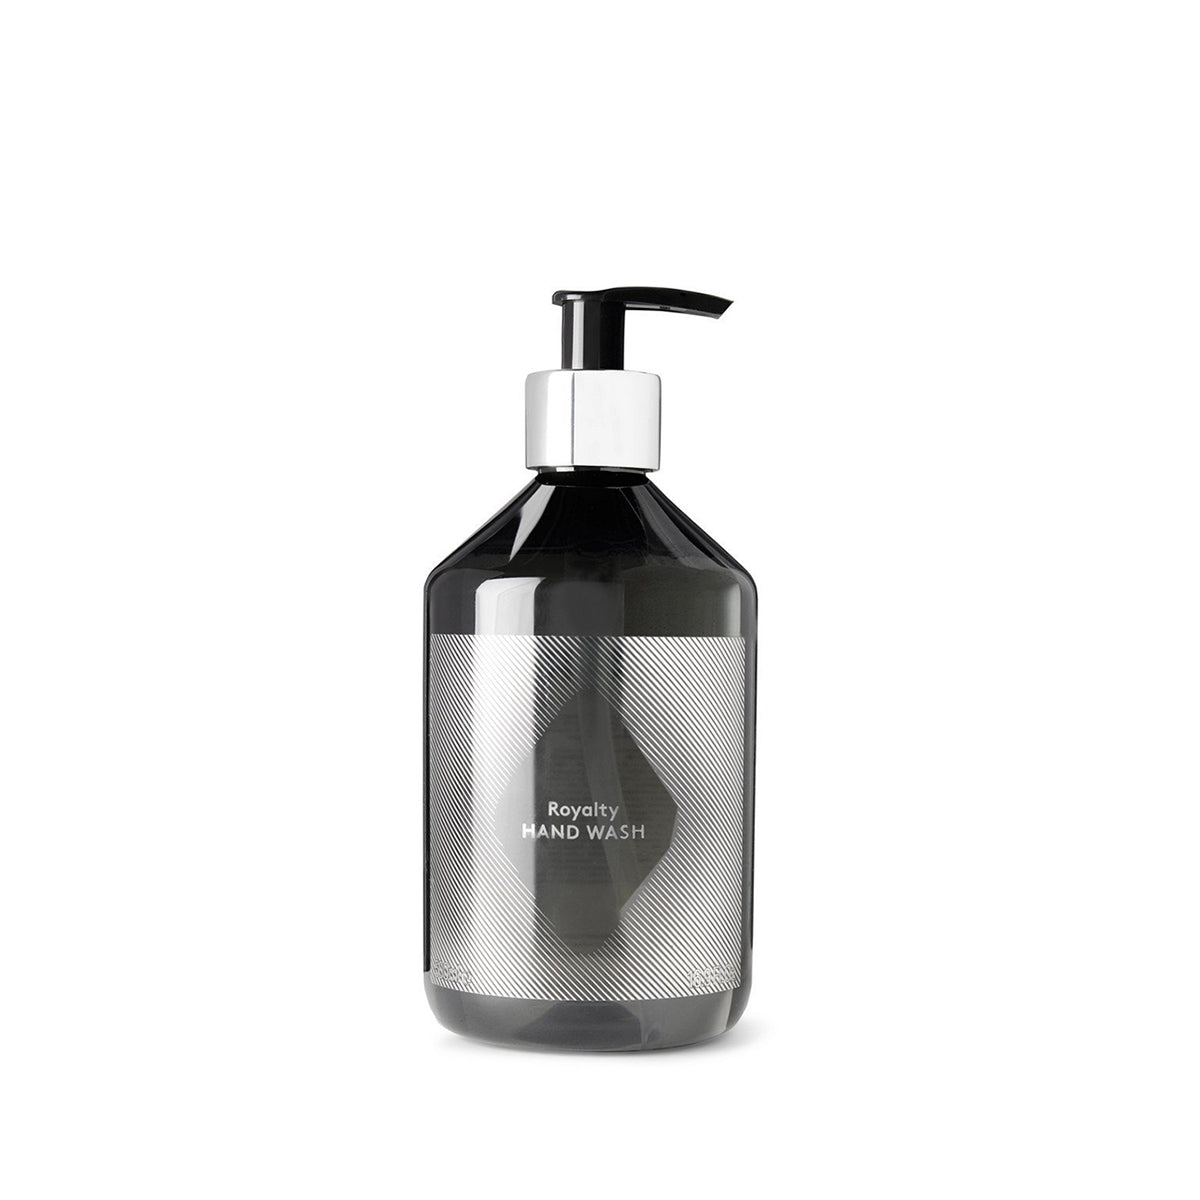 Eclectic Royalty Body Wash 500ml